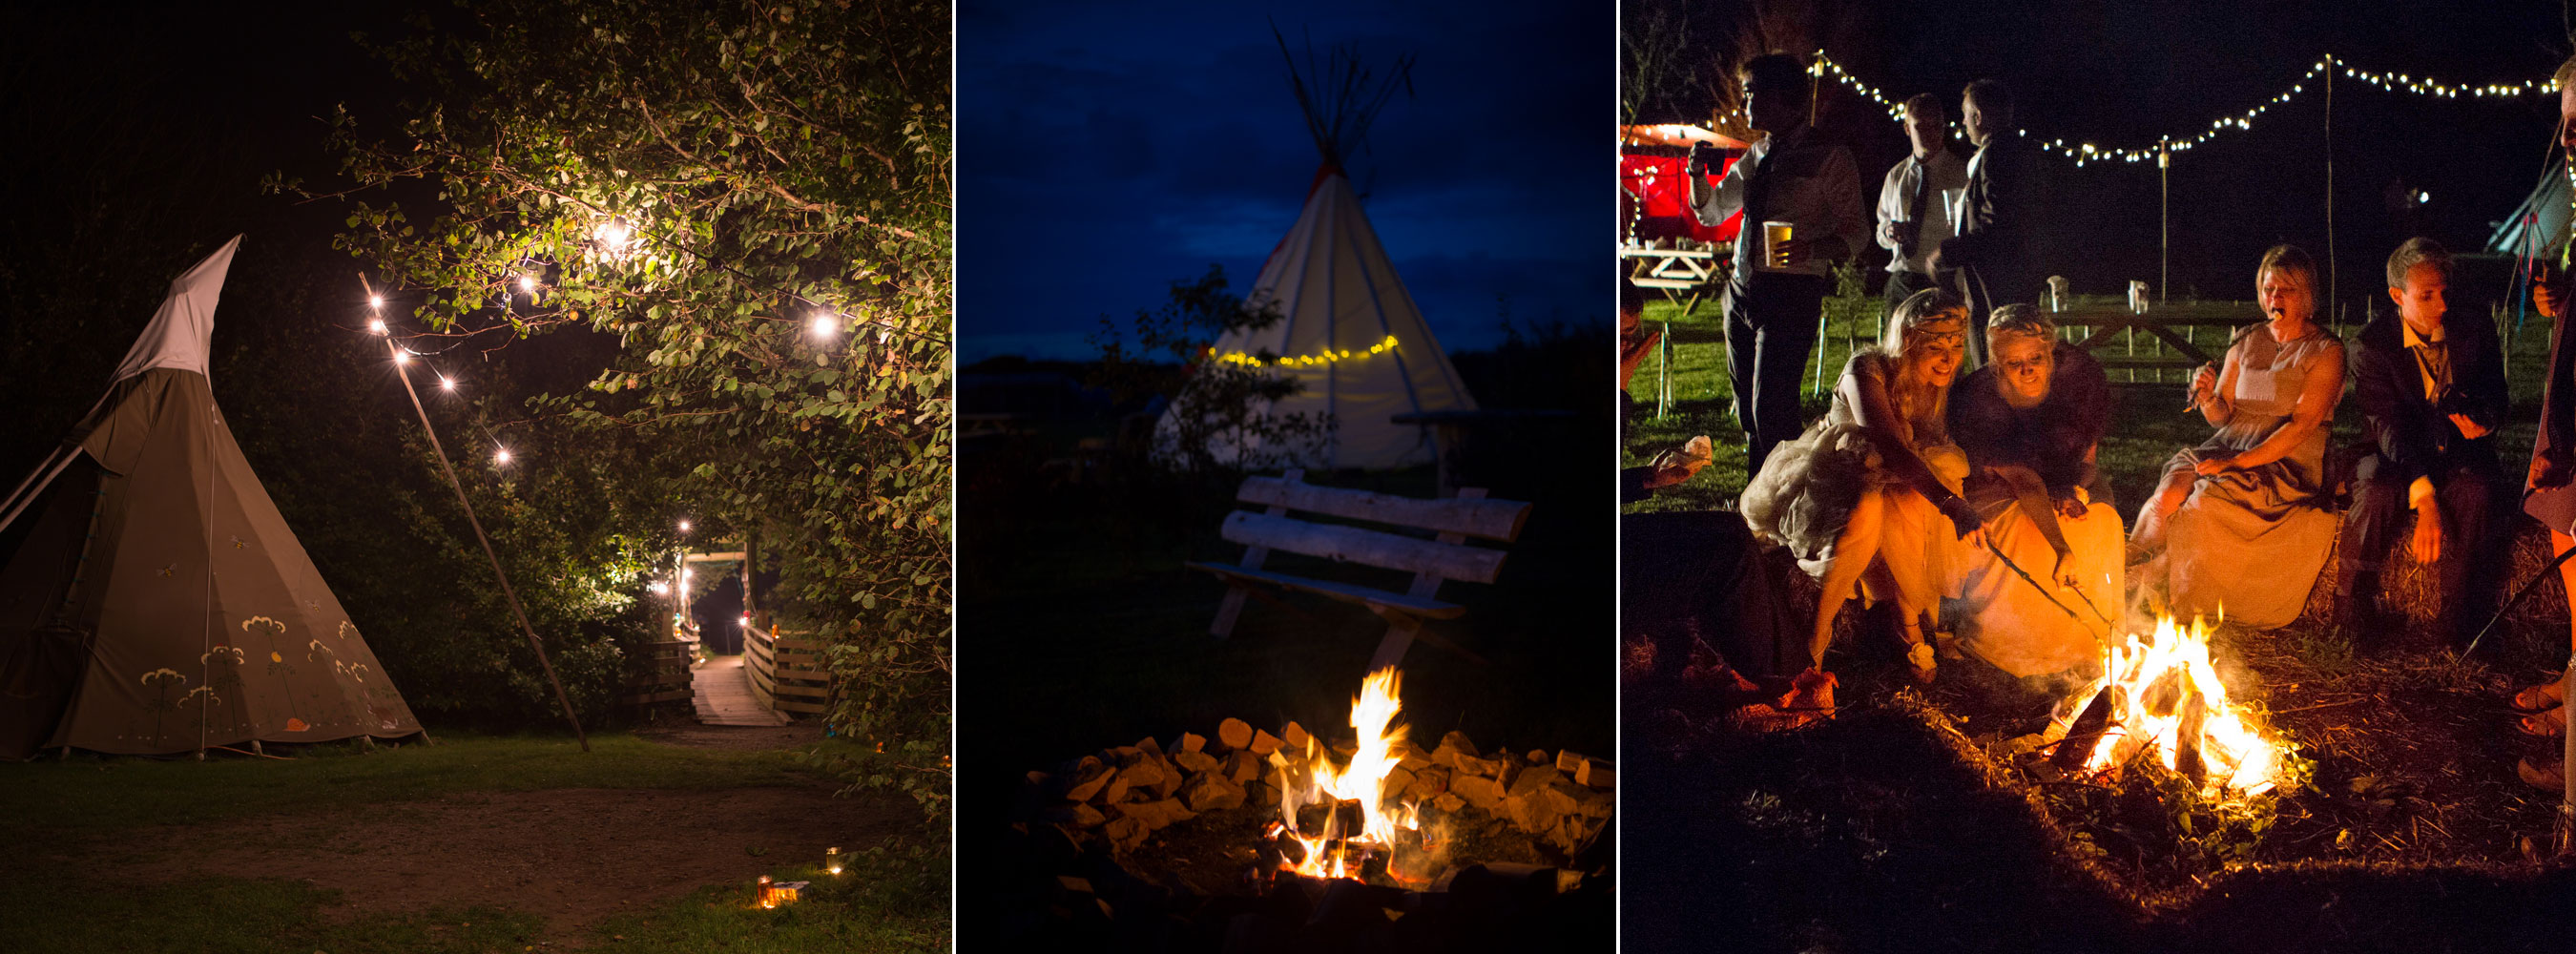 Night Fire Pit Tipis